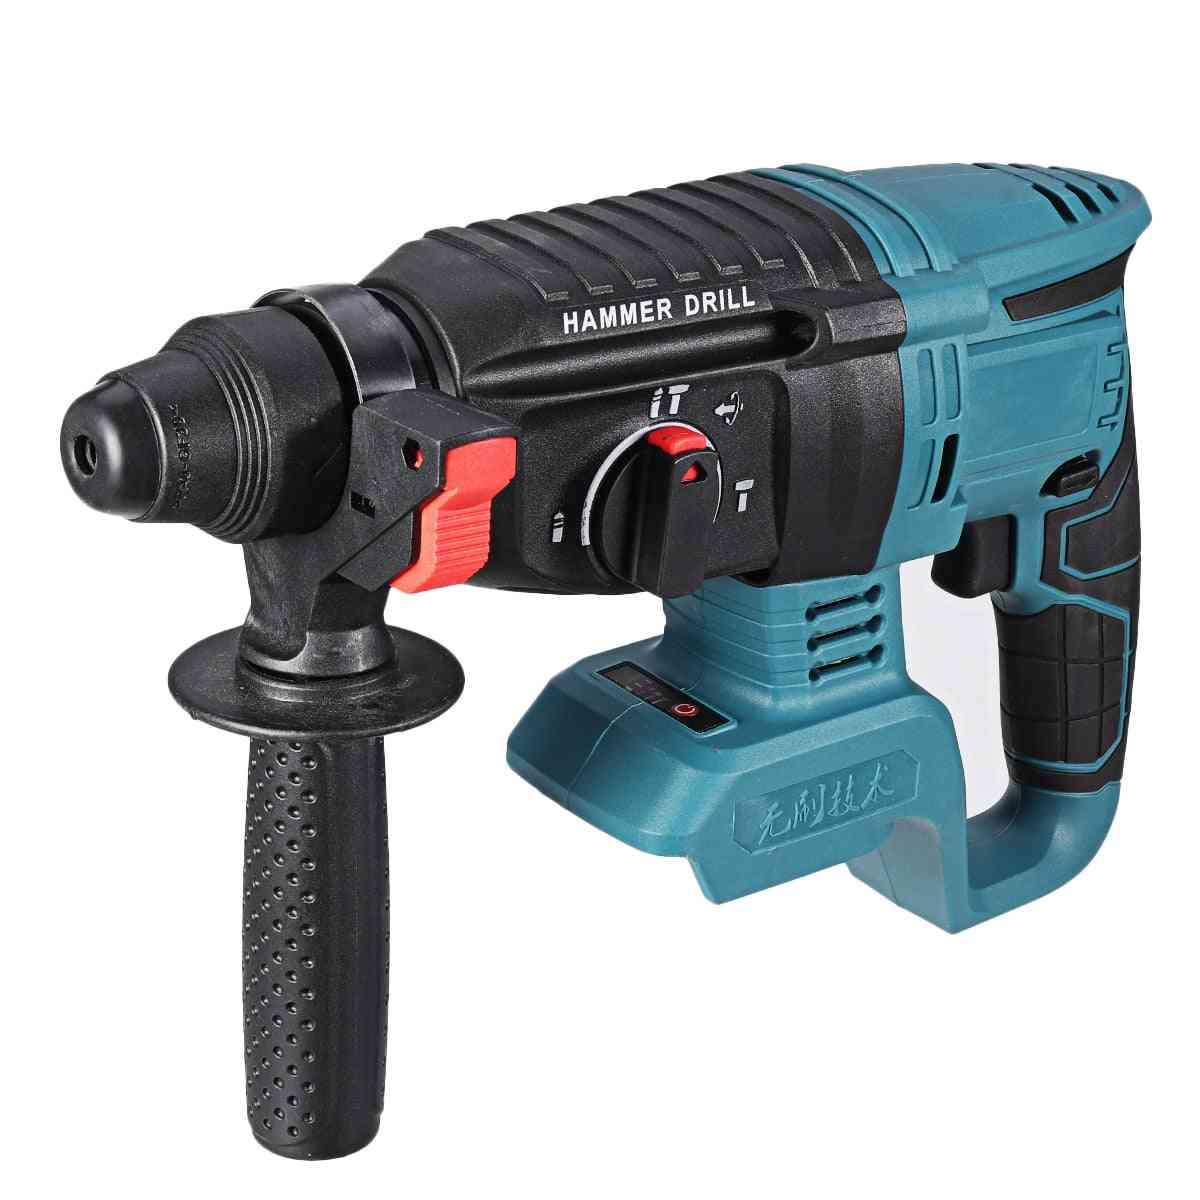 Electric Rotary Hammer Rechargeable Multifunction Electric Hammer Impact Power Drill Tool